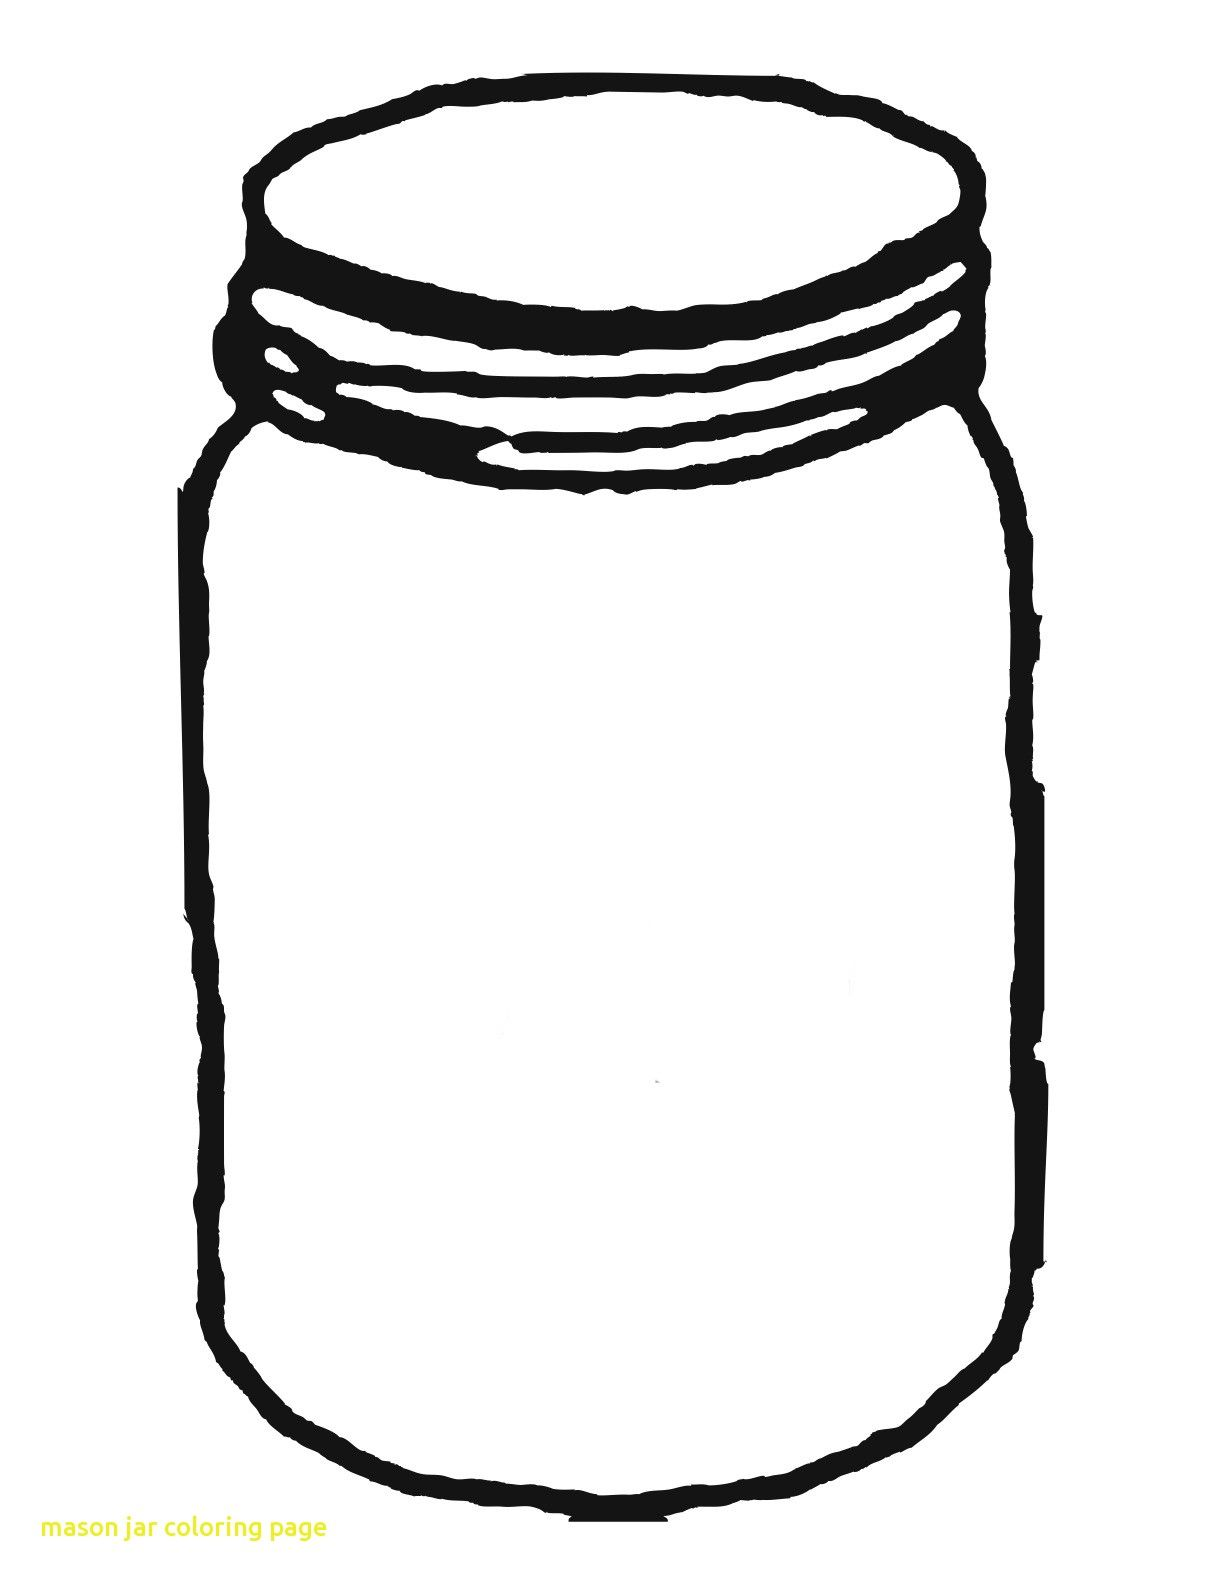 Mason Jar Coloring Page With Template For Clipart Clipartwiz And Mason Jar Clip Art Colored Mason Jars Mason Jars